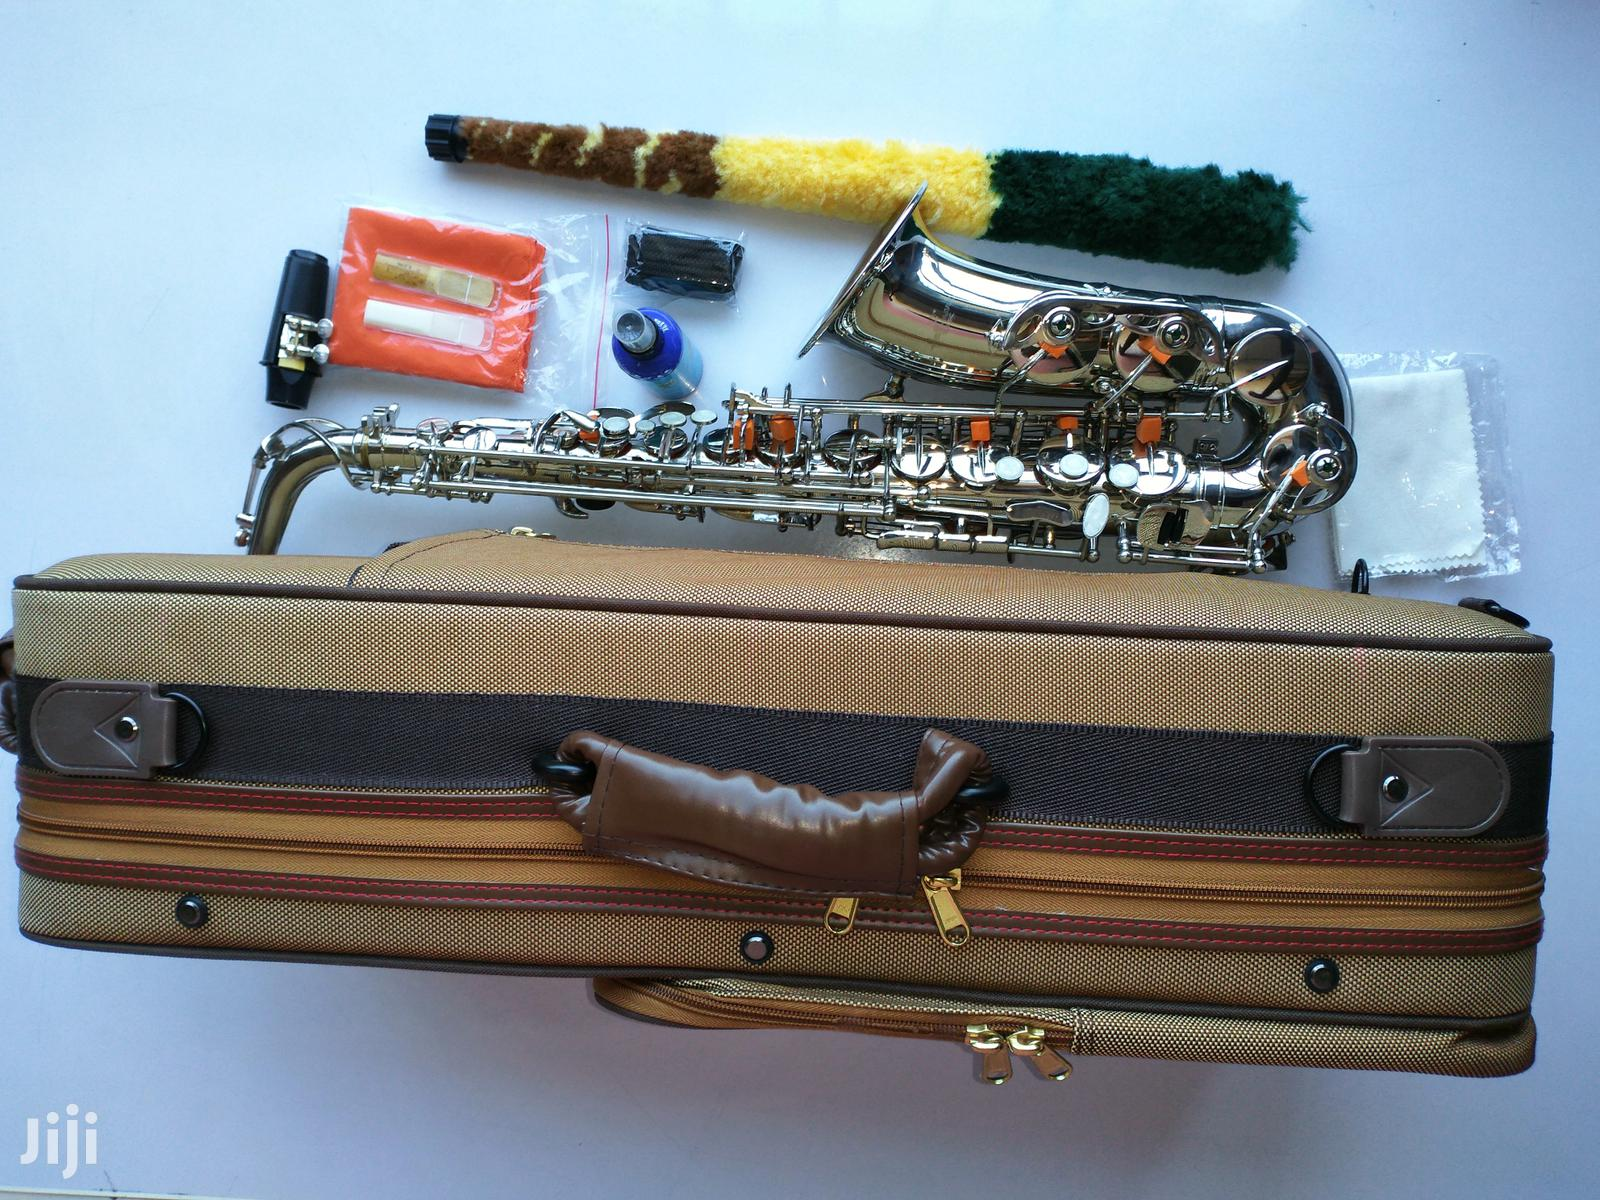 Hallmark-uk High Quality Alto Saxophone(Silver)   Musical Instruments & Gear for sale in Ojo, Lagos State, Nigeria